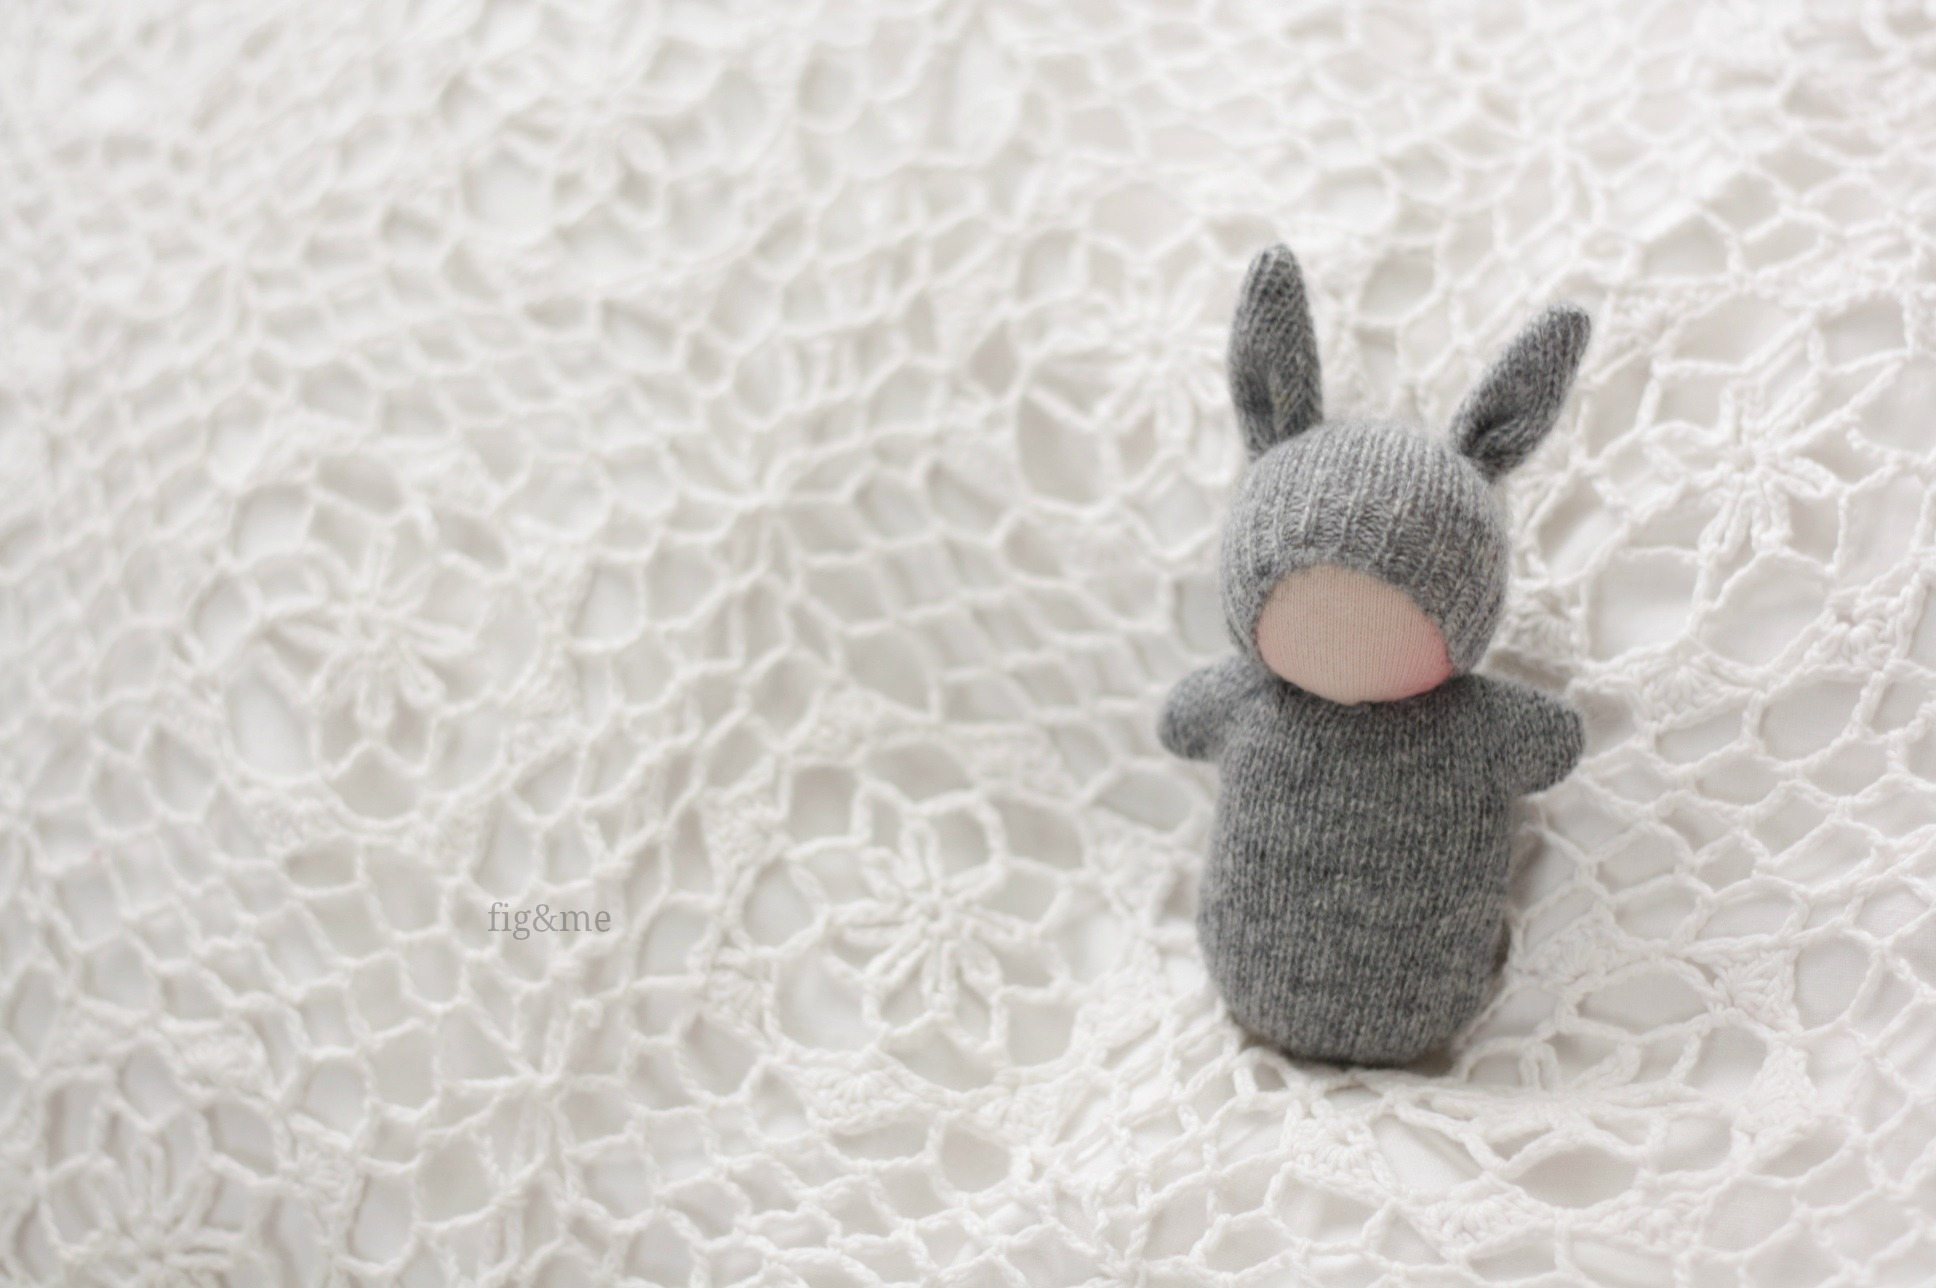 Little Grey Bunny, by Fig&me